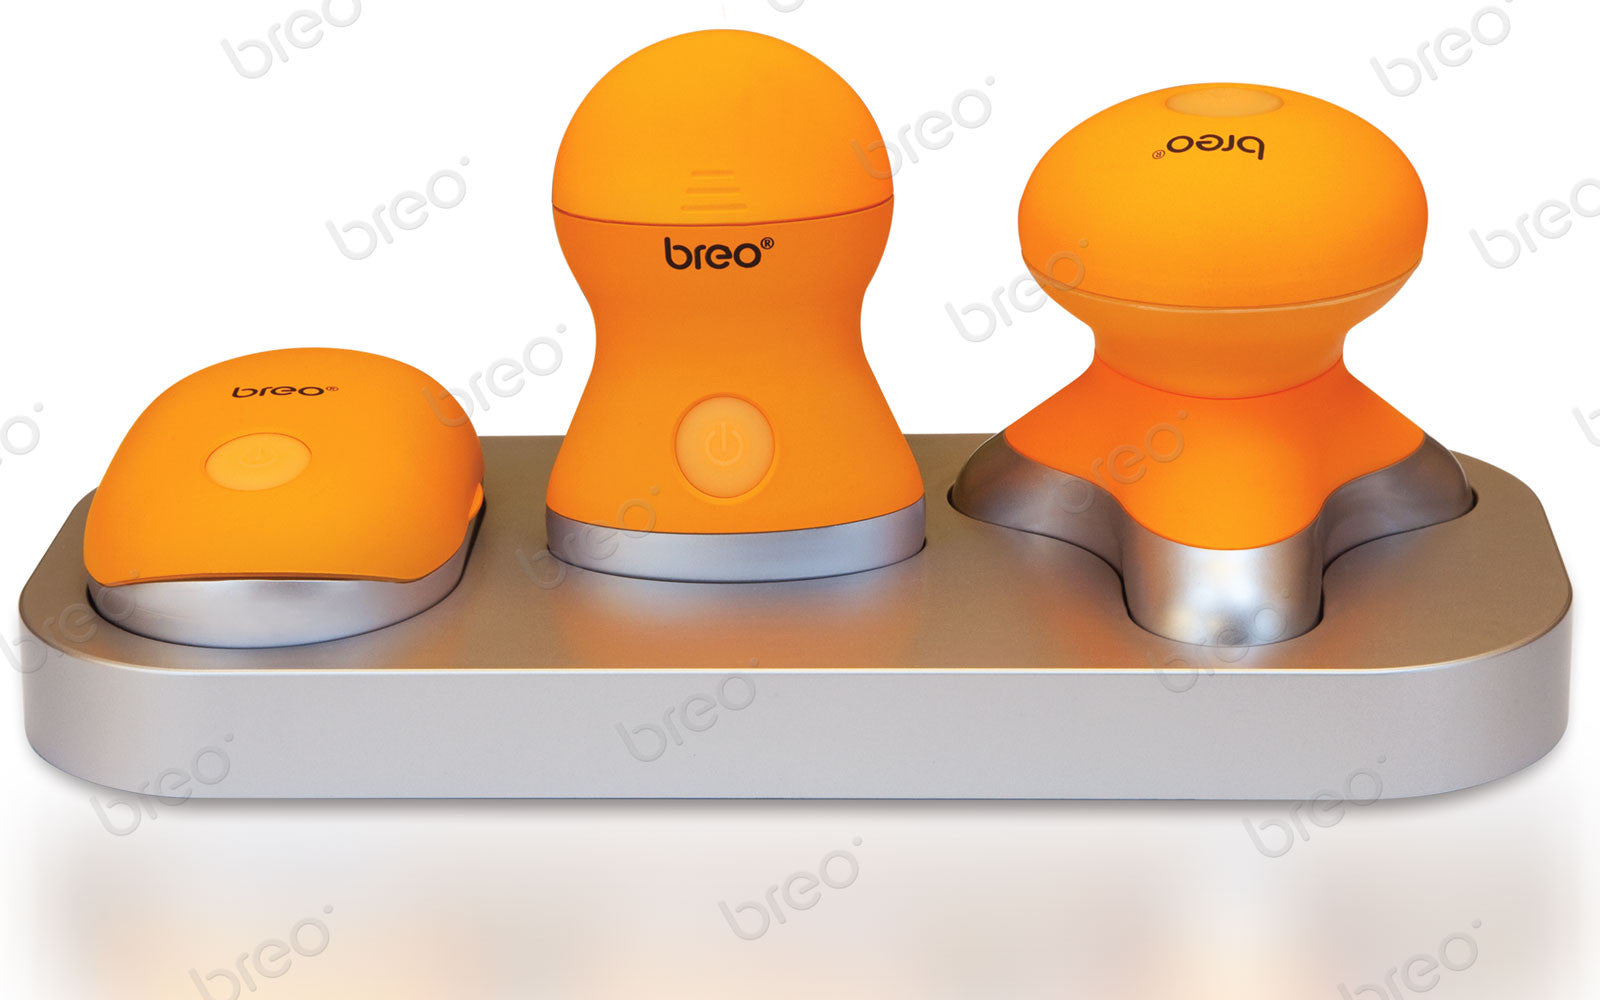 Breo Mini319 Body Massager Set - Breo-USA